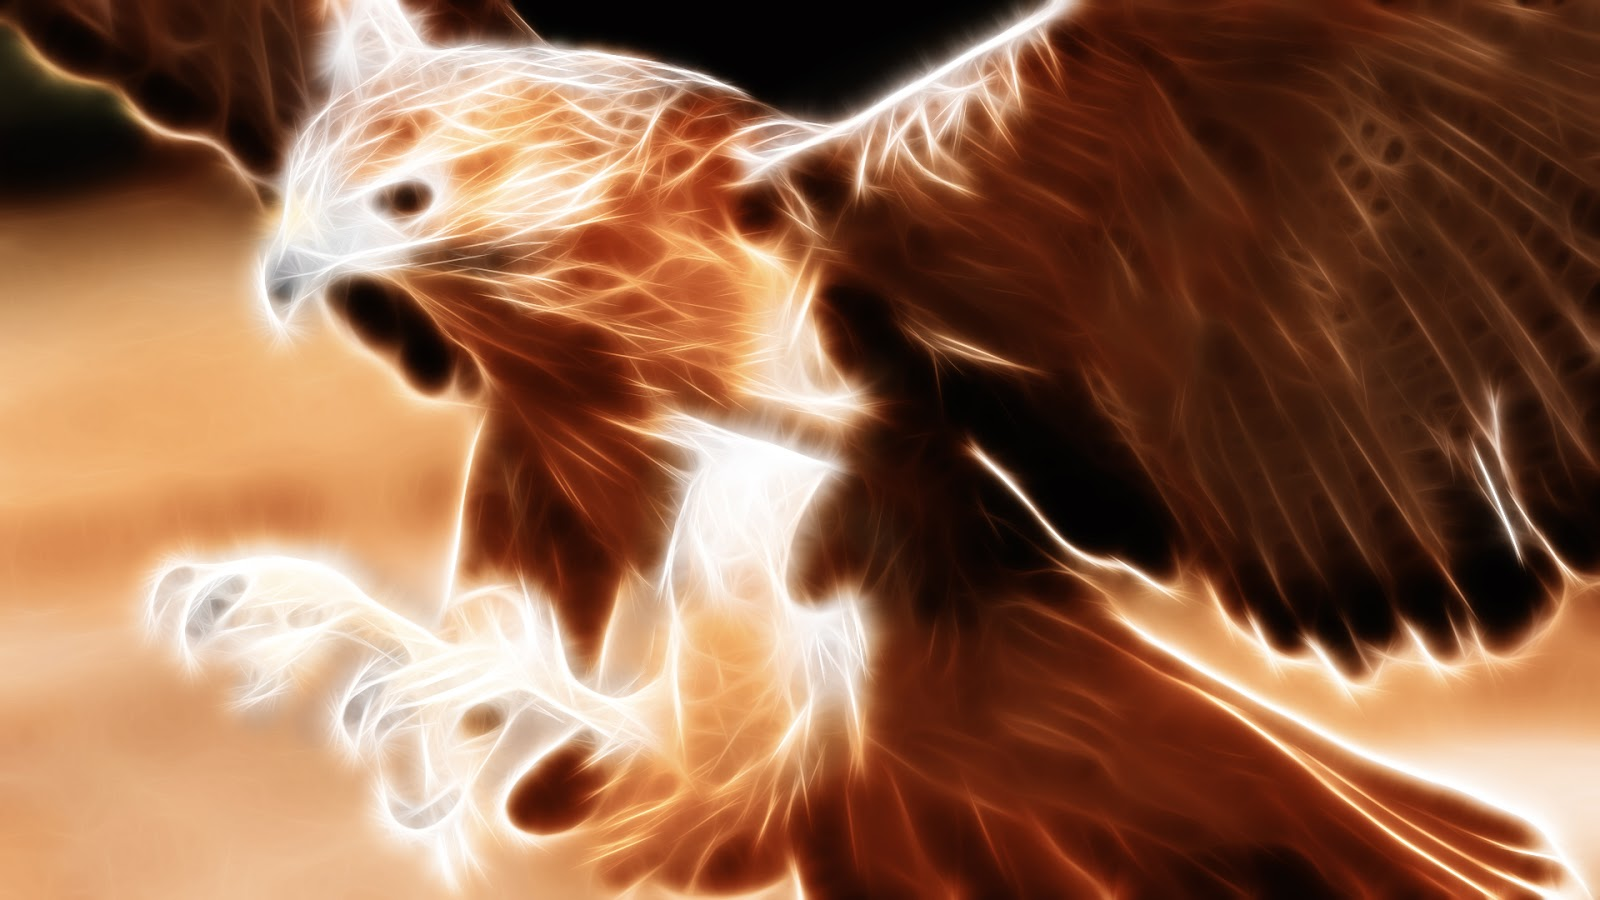 Lion Animal Wallpaper Nice Animals Fractal All About Photo